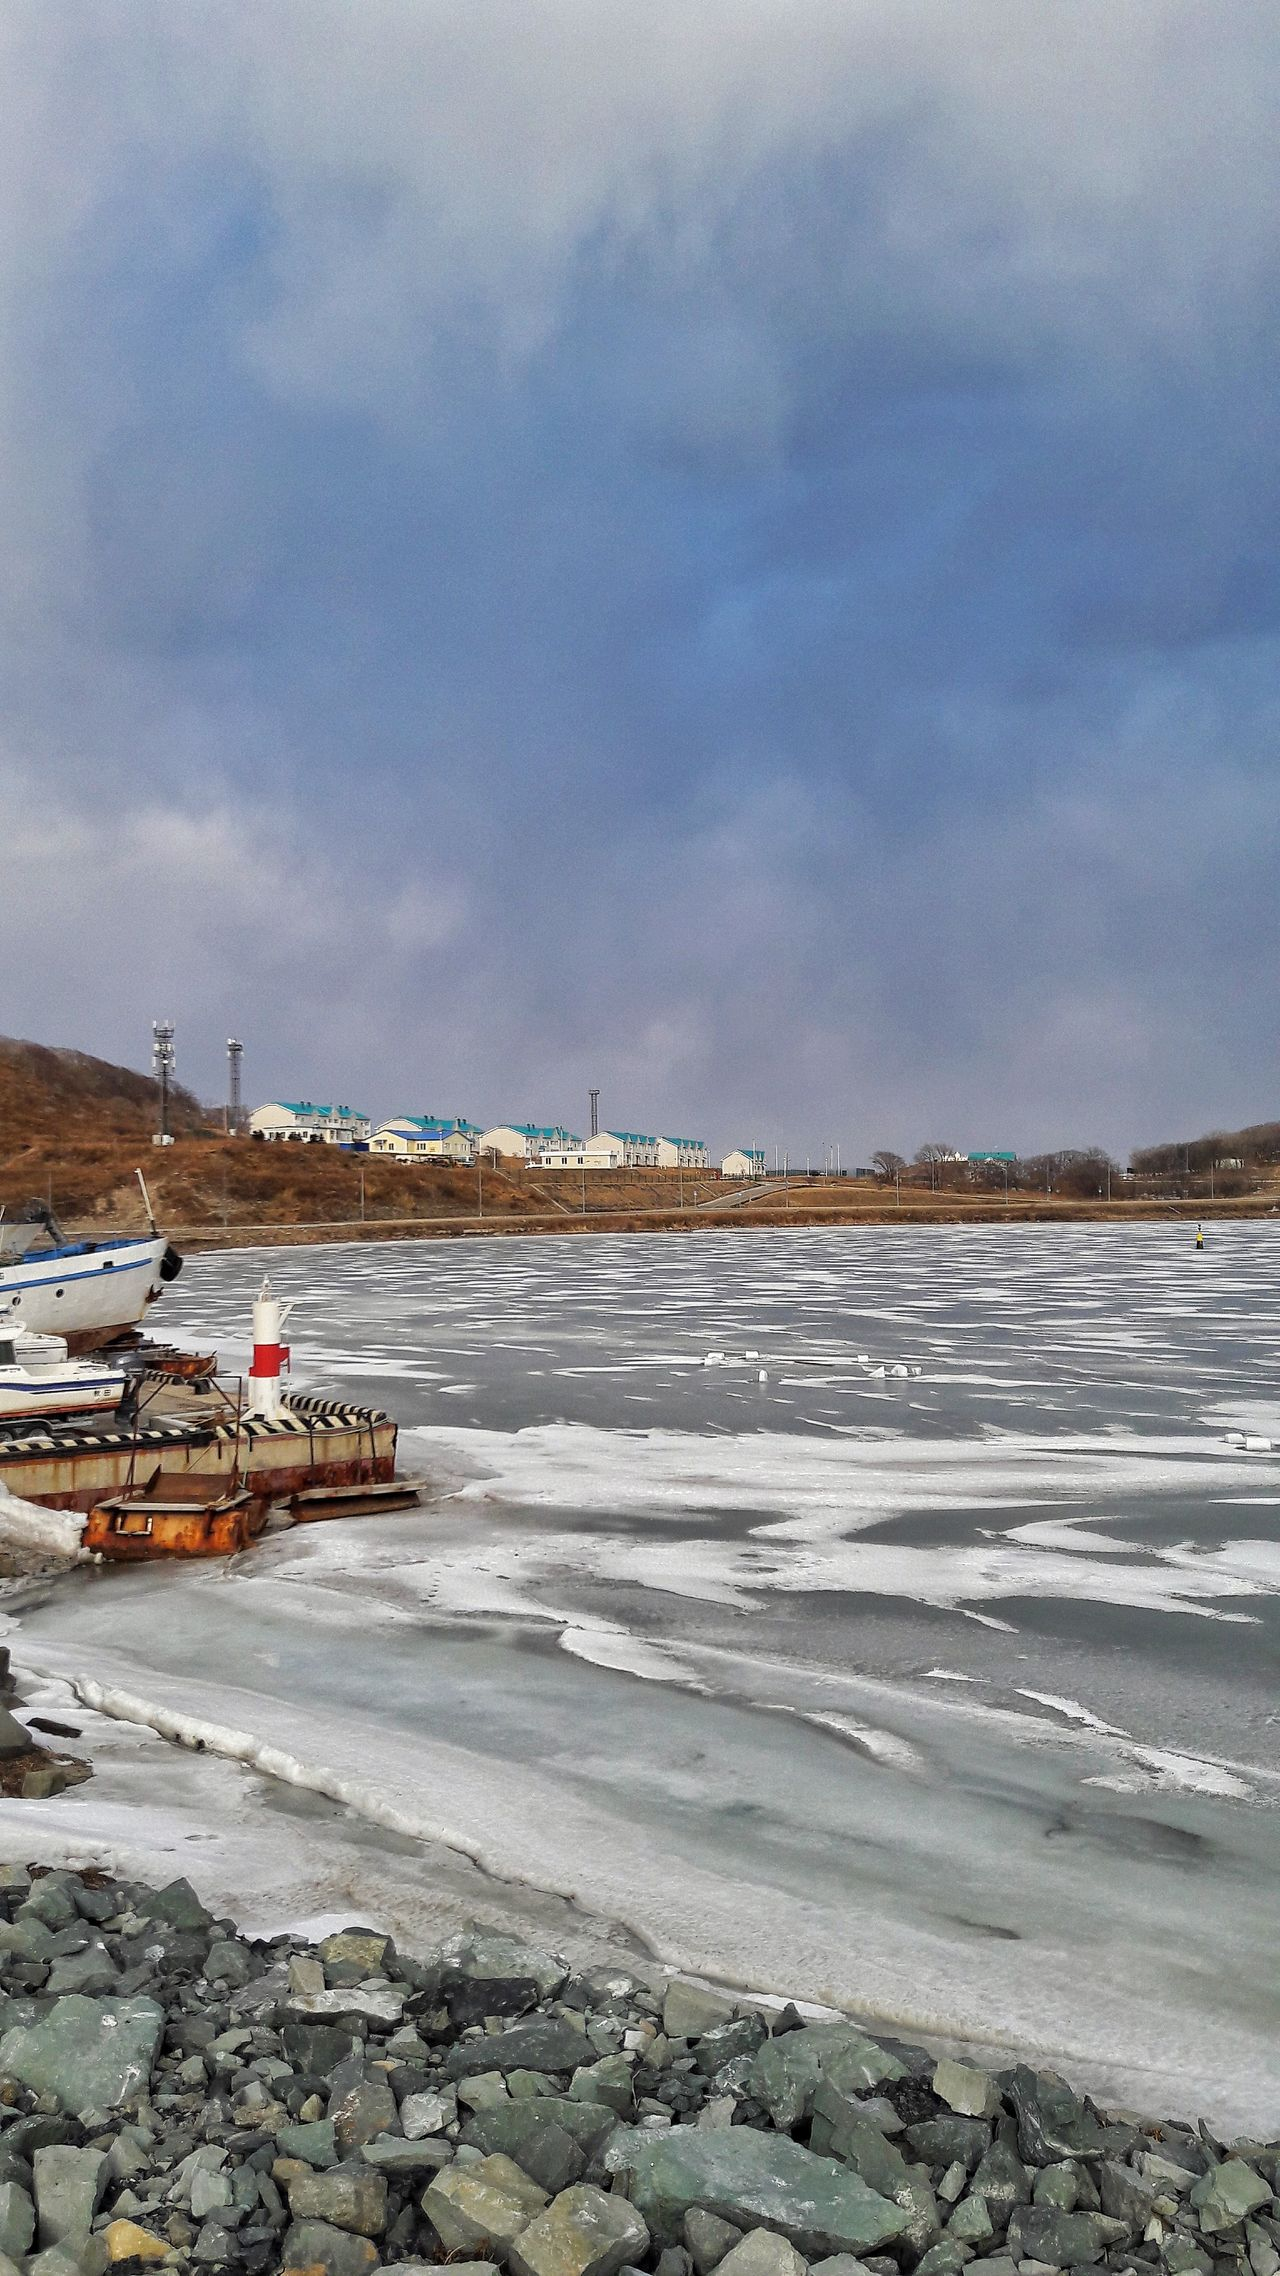 Salt - Mineral Business Finance And Industry Salt Flat Outdoors Nature Salt Basin Snow Landscape Agriculture Cloud - Sky Sky Cold Temperature Day No People Beauty In Nature Like4like Photography Like Follow4follow Sea No Filter Winter Water